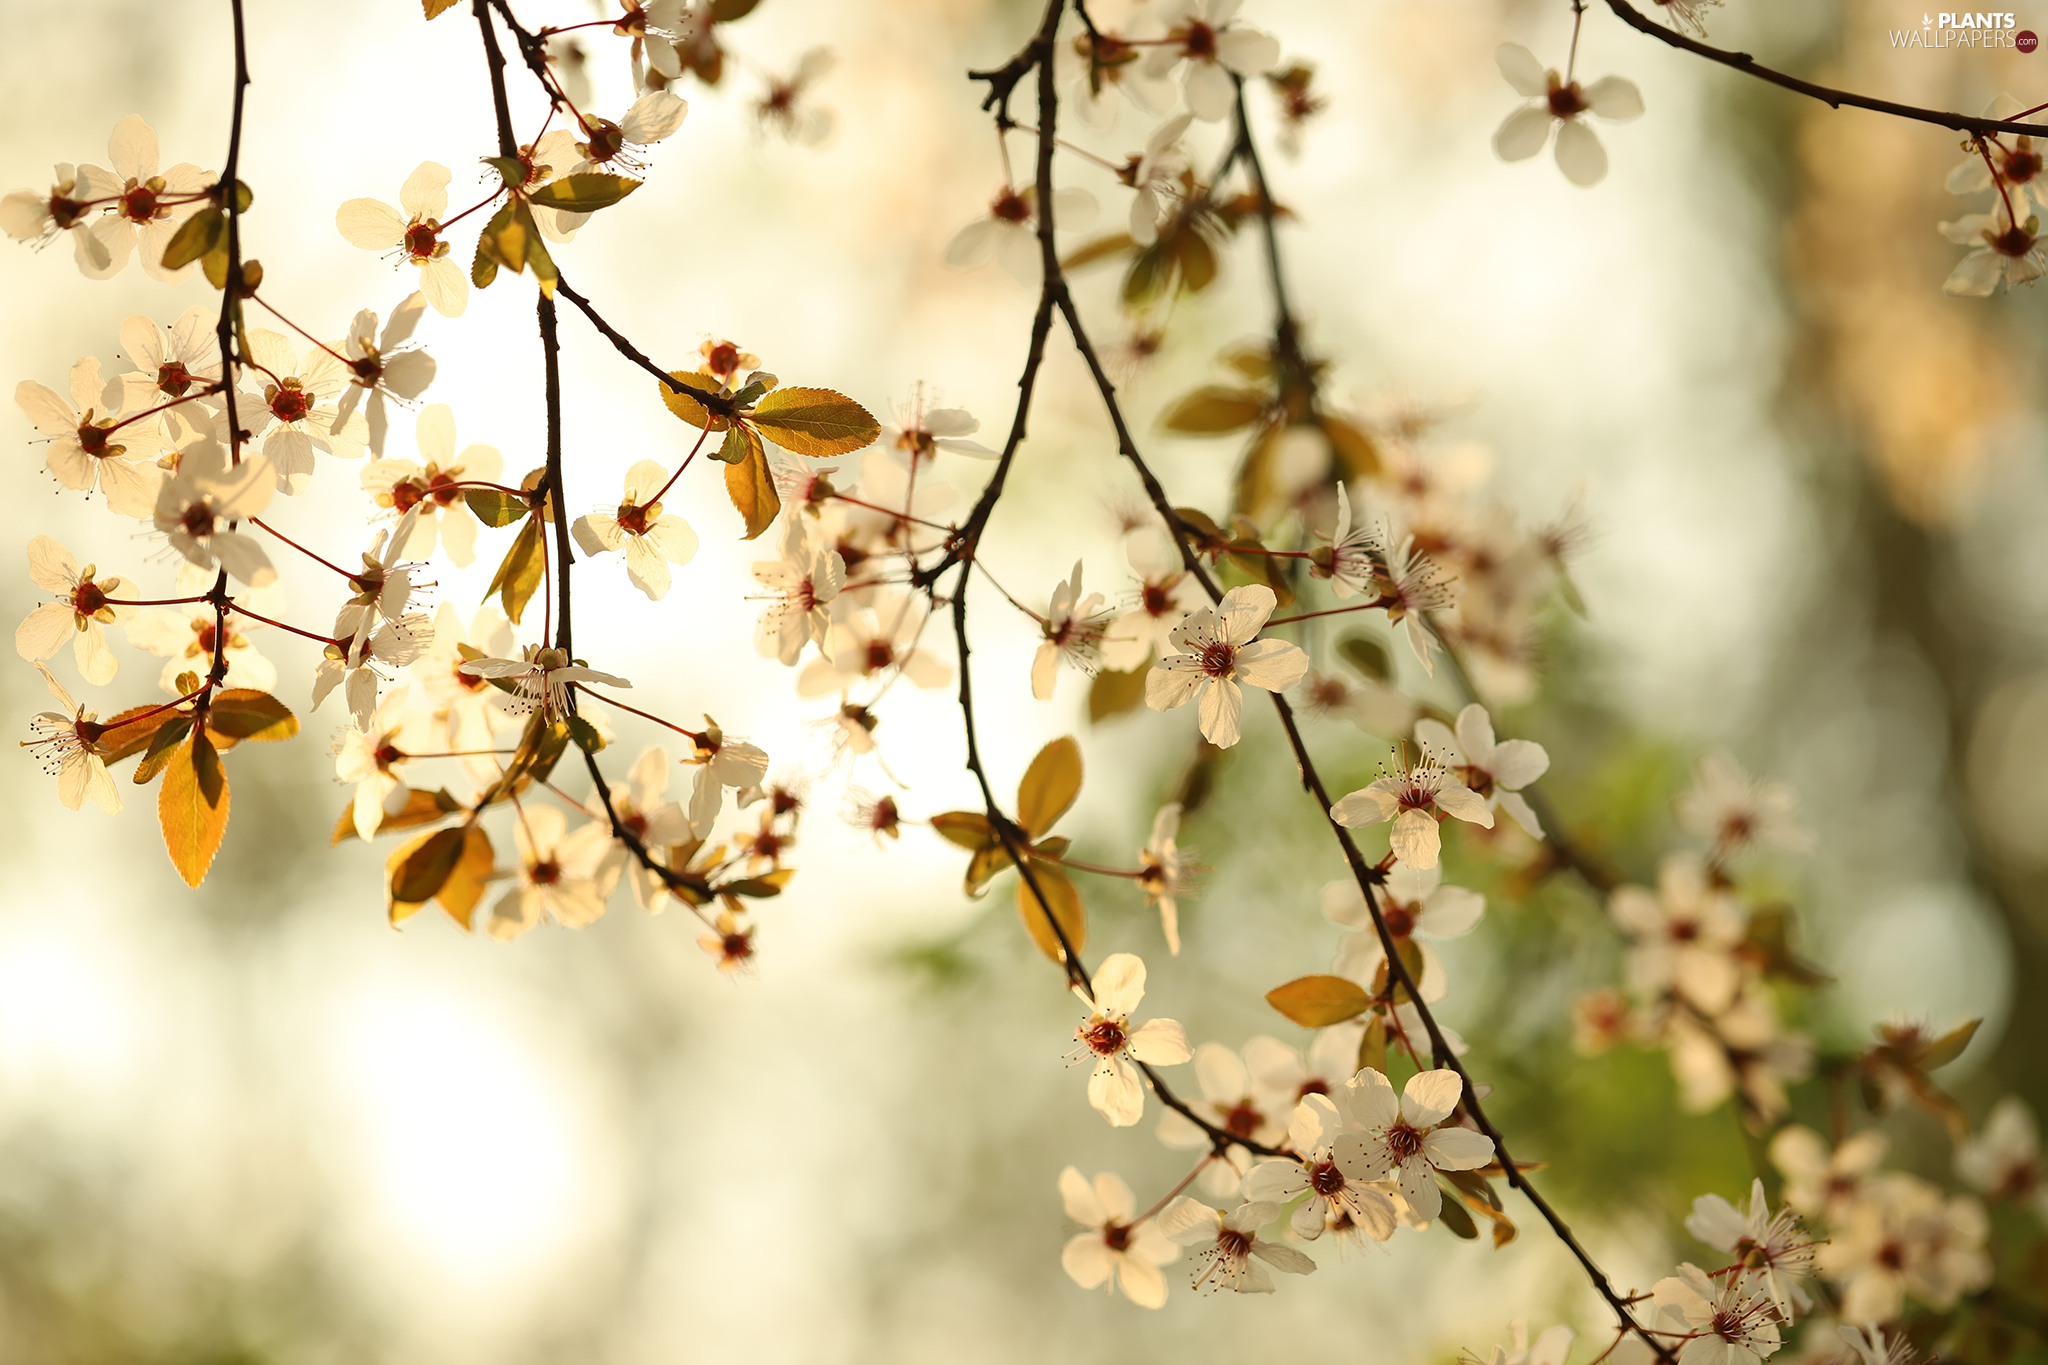 Twigs, blurry background, White, Flowers, Fruit Tree